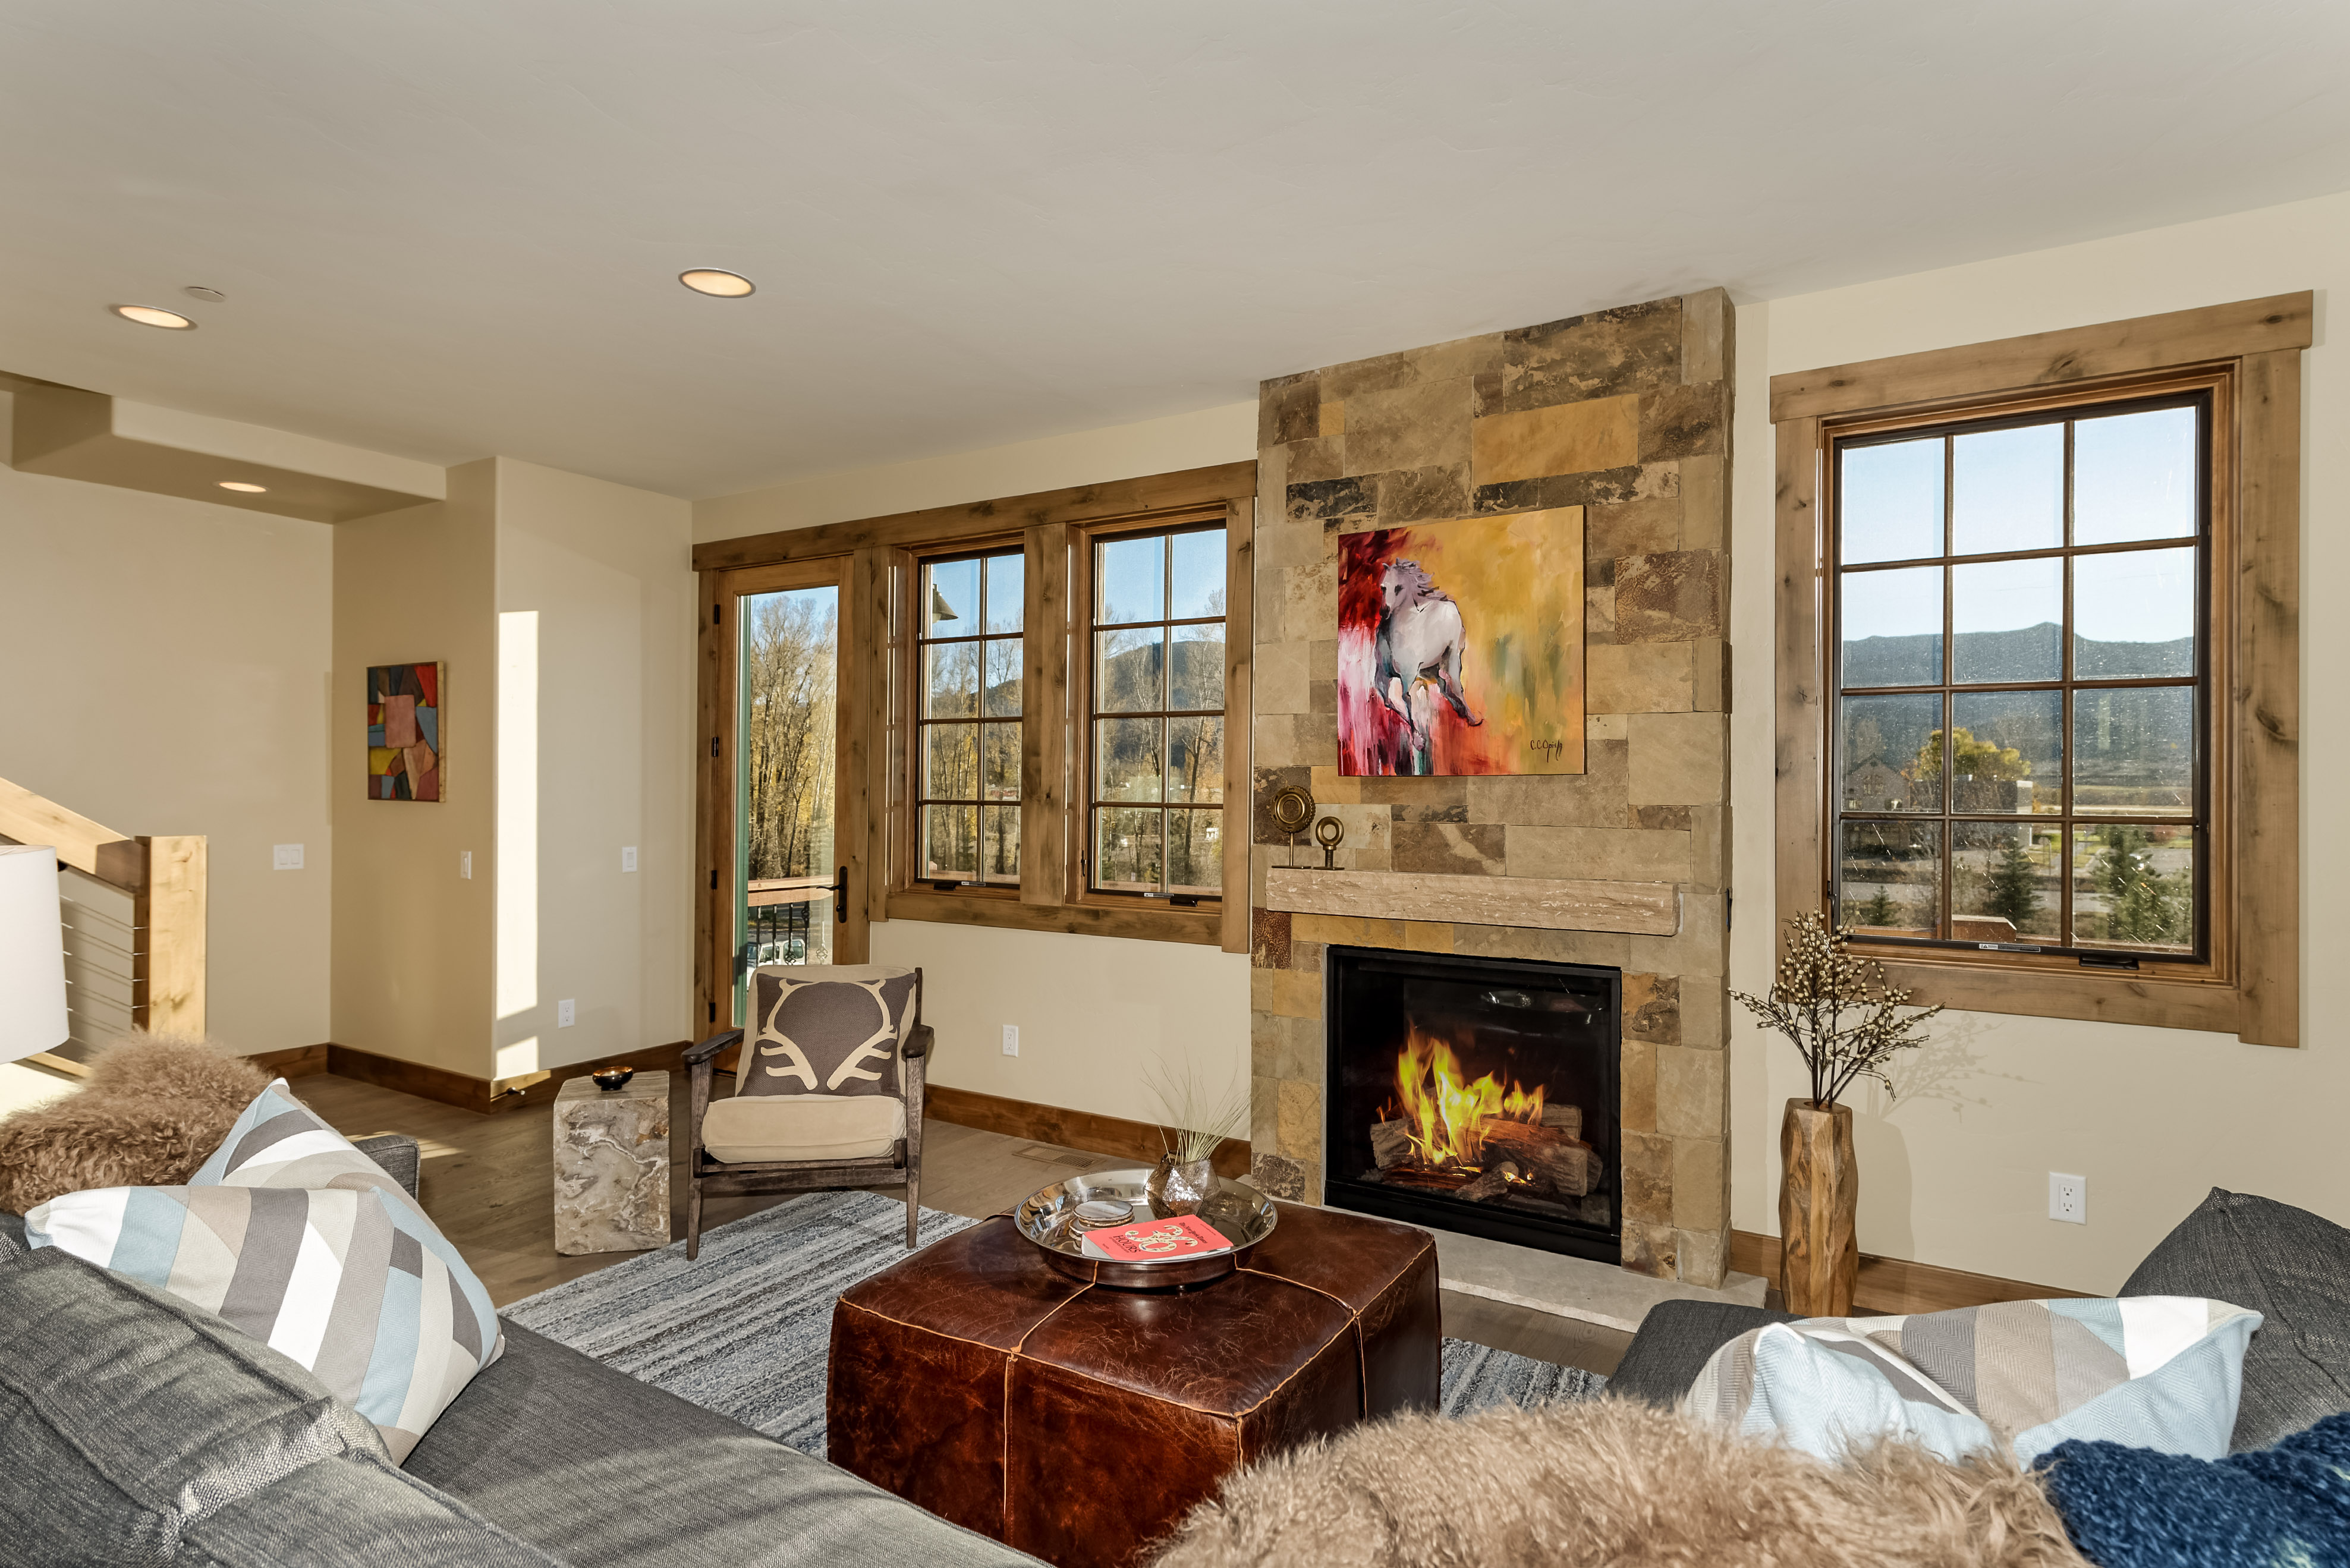 Townhouse for Sale at Shadowrock 222 Overlook Ridge Carbondale, Colorado 81623 United States